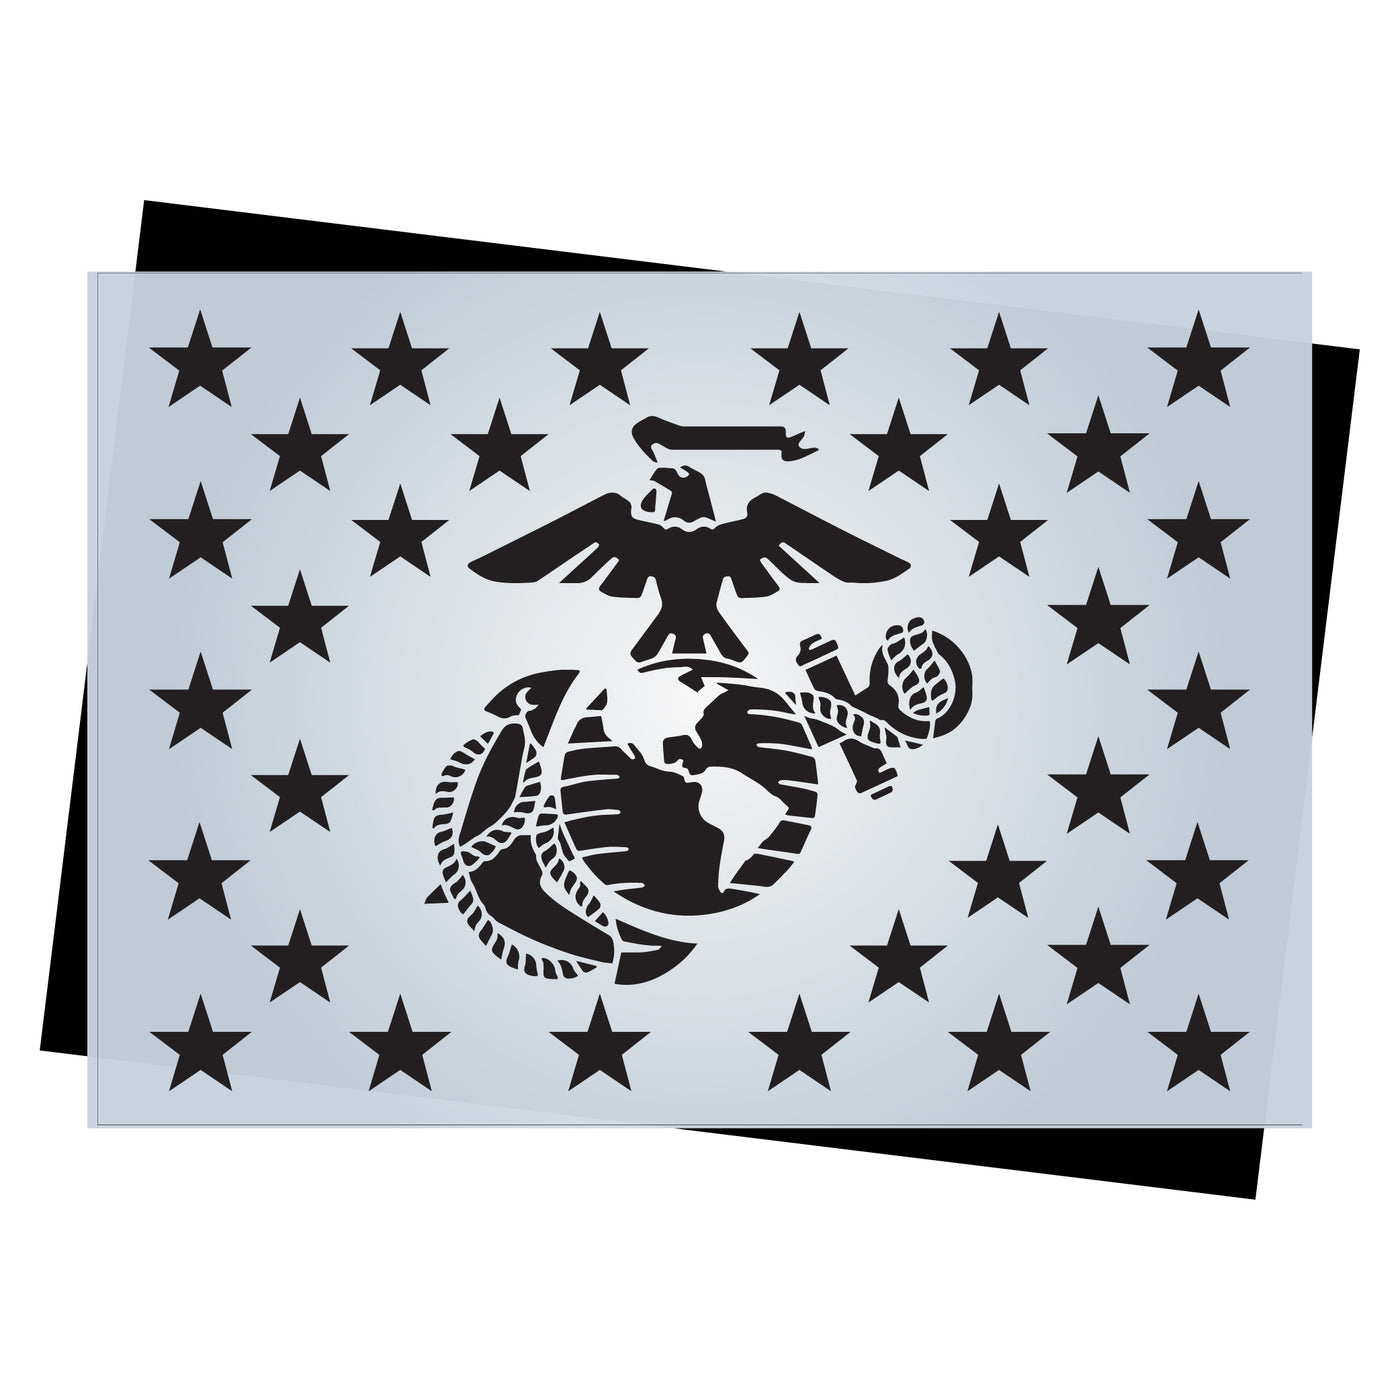 graphic regarding 50 Star Stencil Printable identify Star Business Templates for Craftsmen of AMERICAN Picket Flags